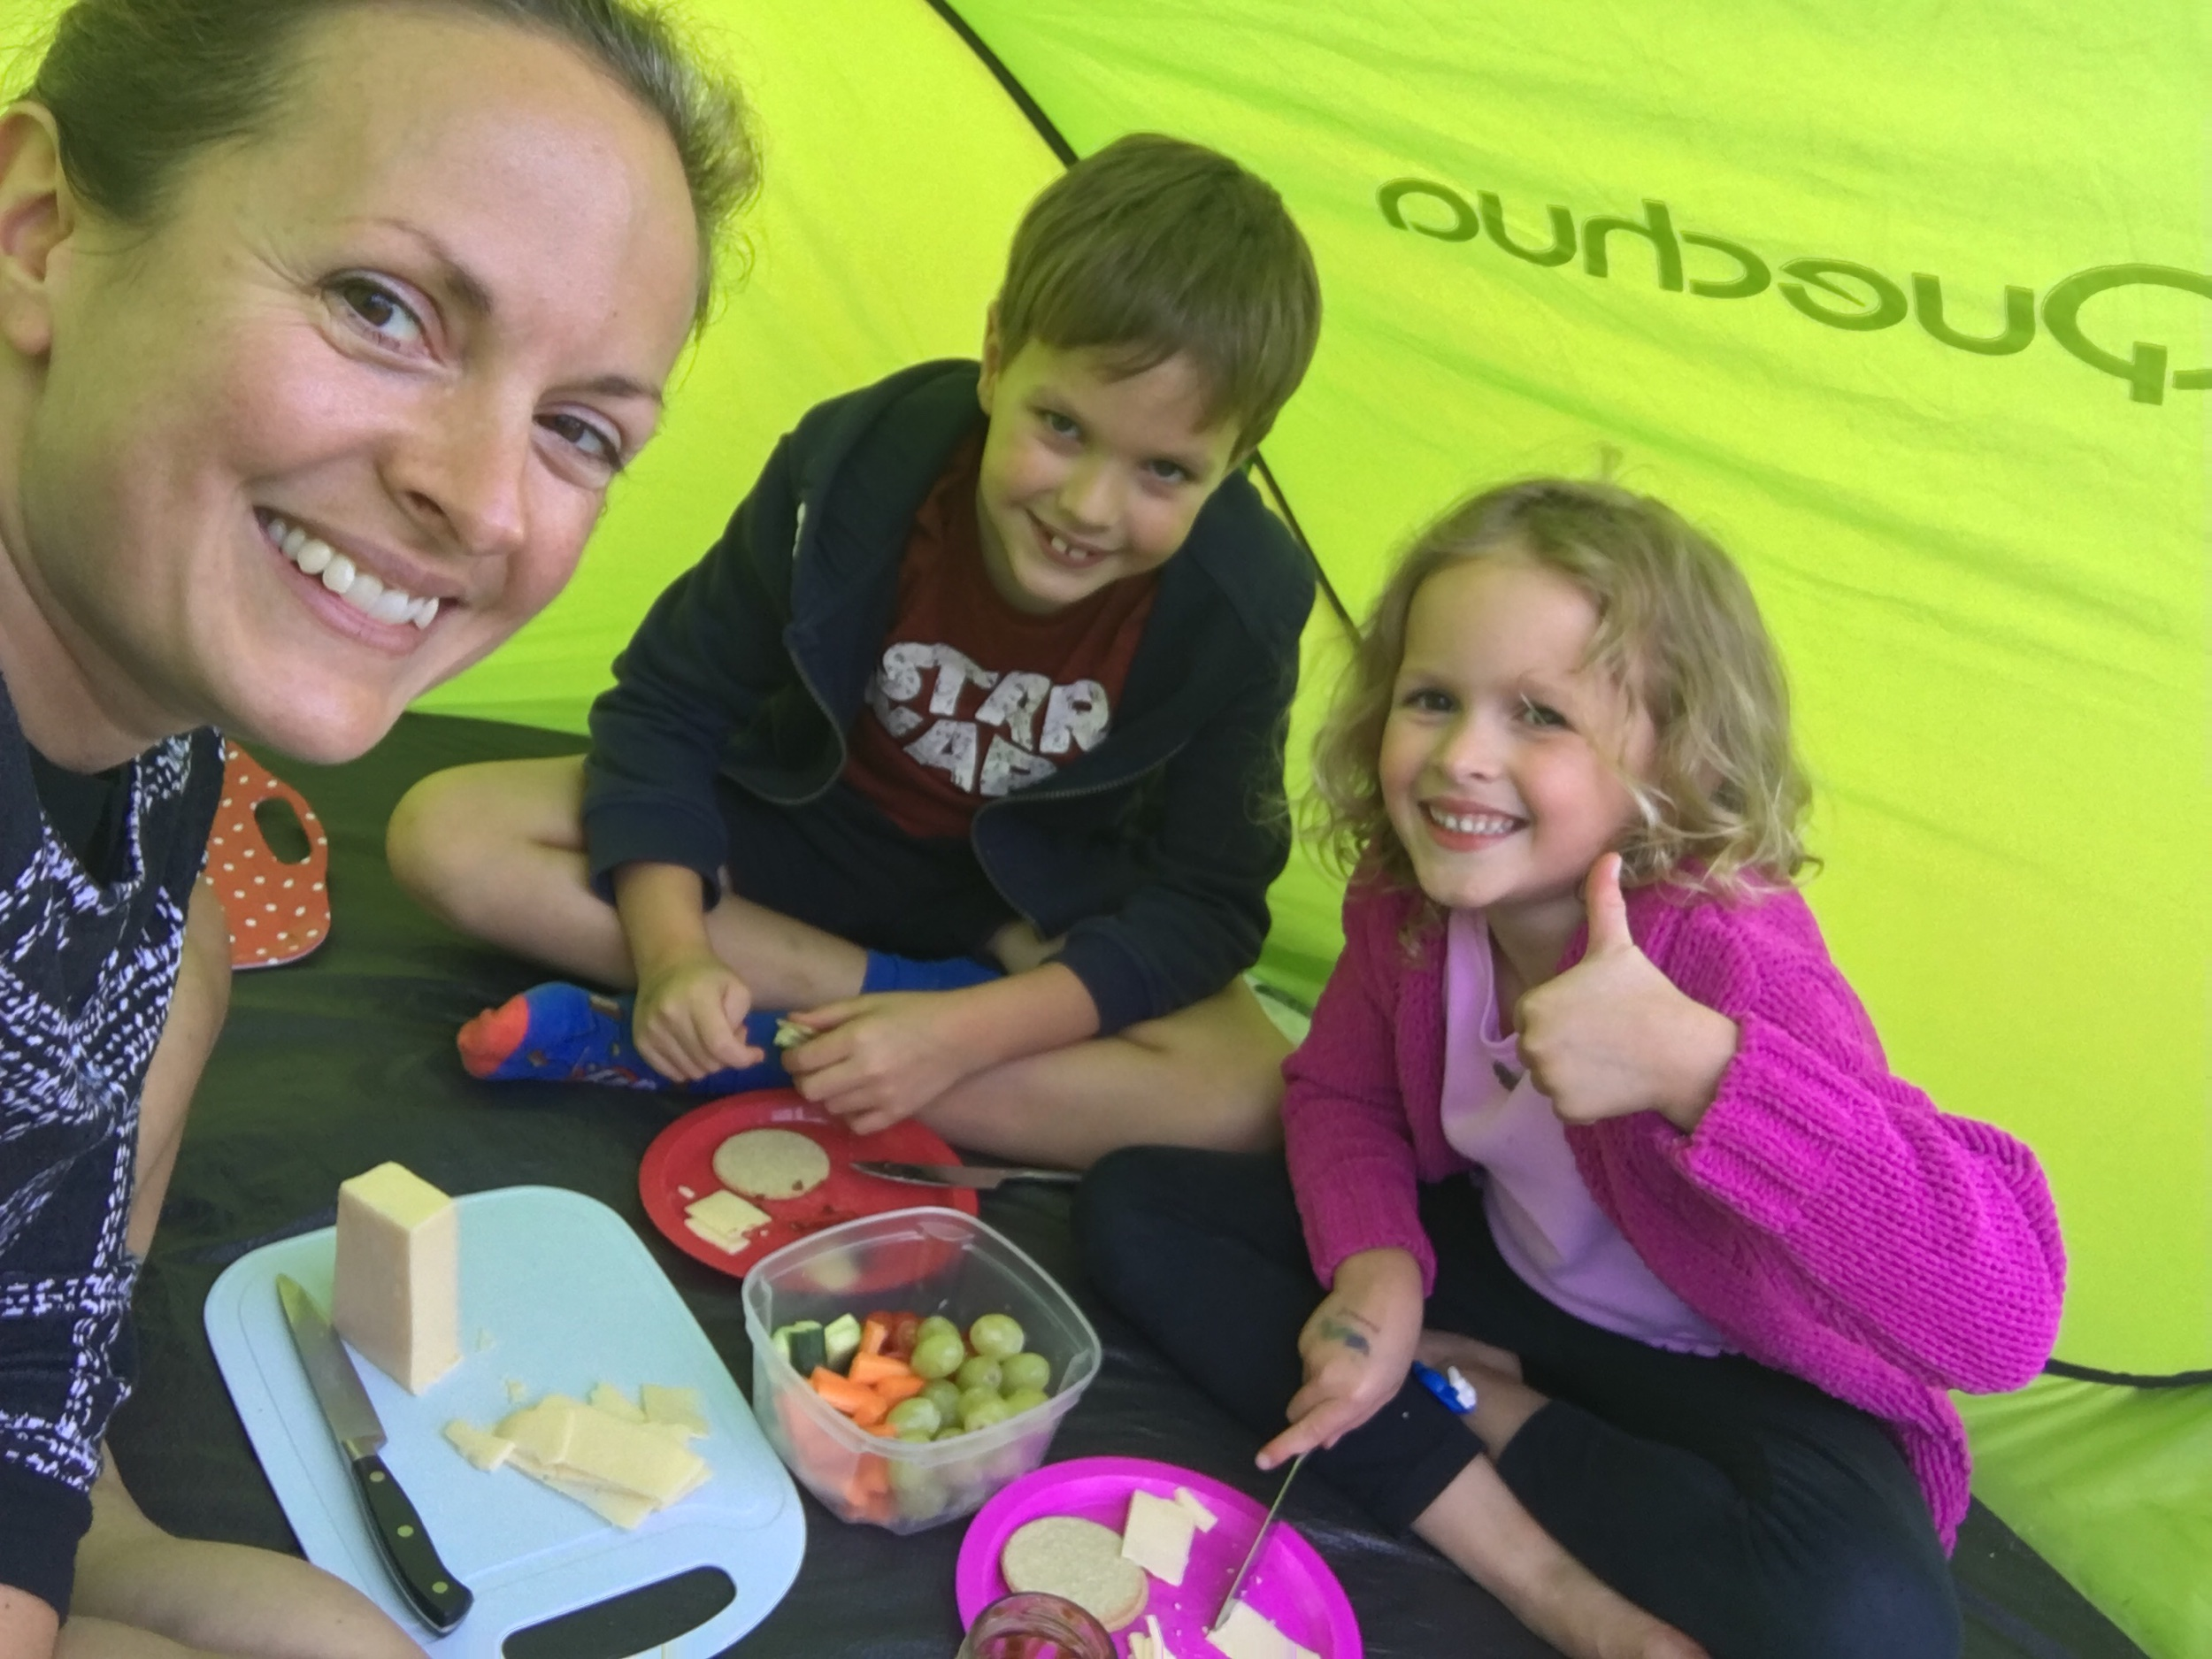 Cheese & oatcakes in the pop-up tent.